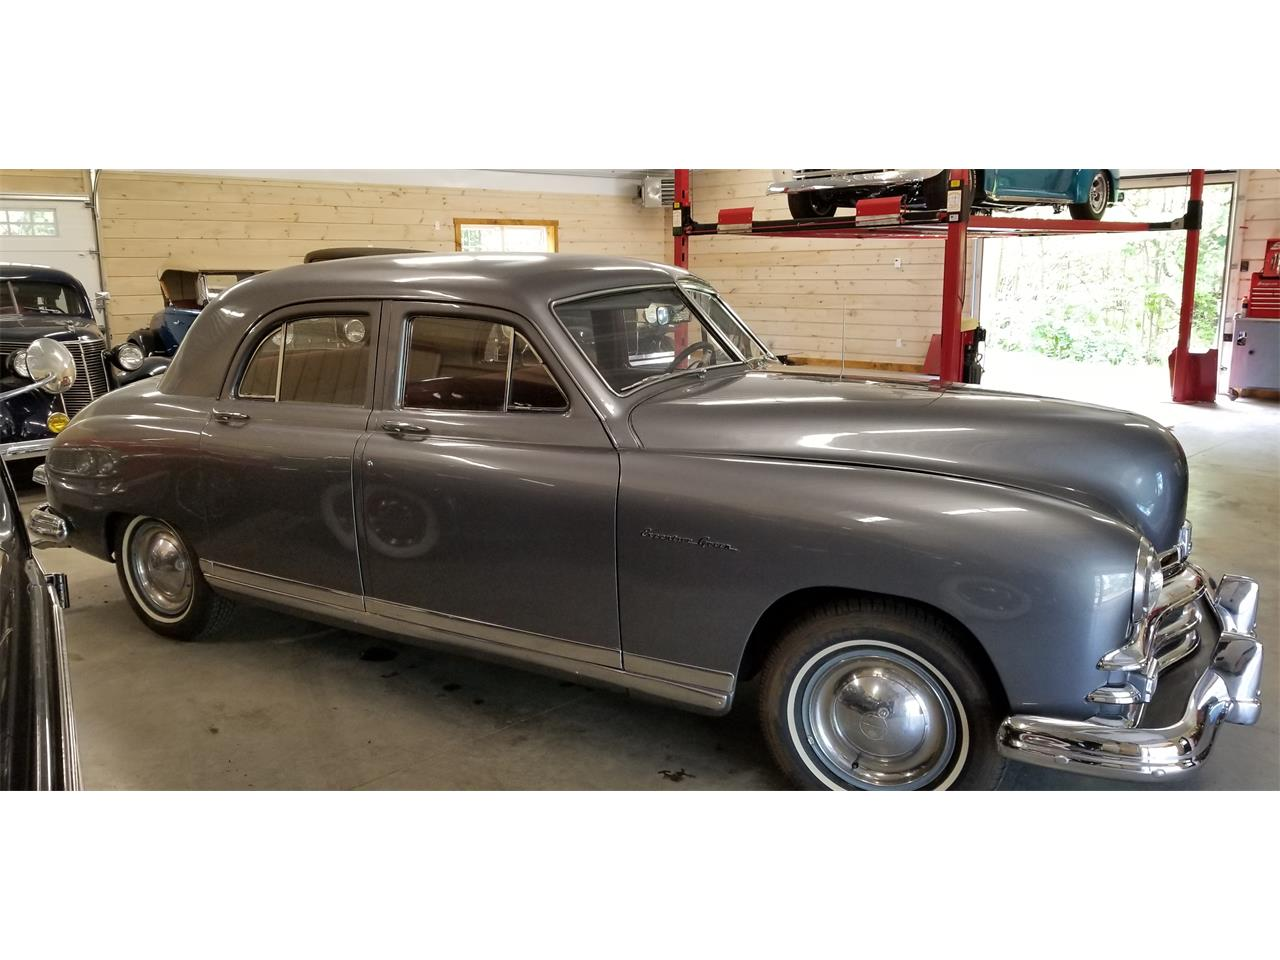 1949 Kaiser 4-Dr Sedan (CC-1194193) for sale in Ellington, Connecticut